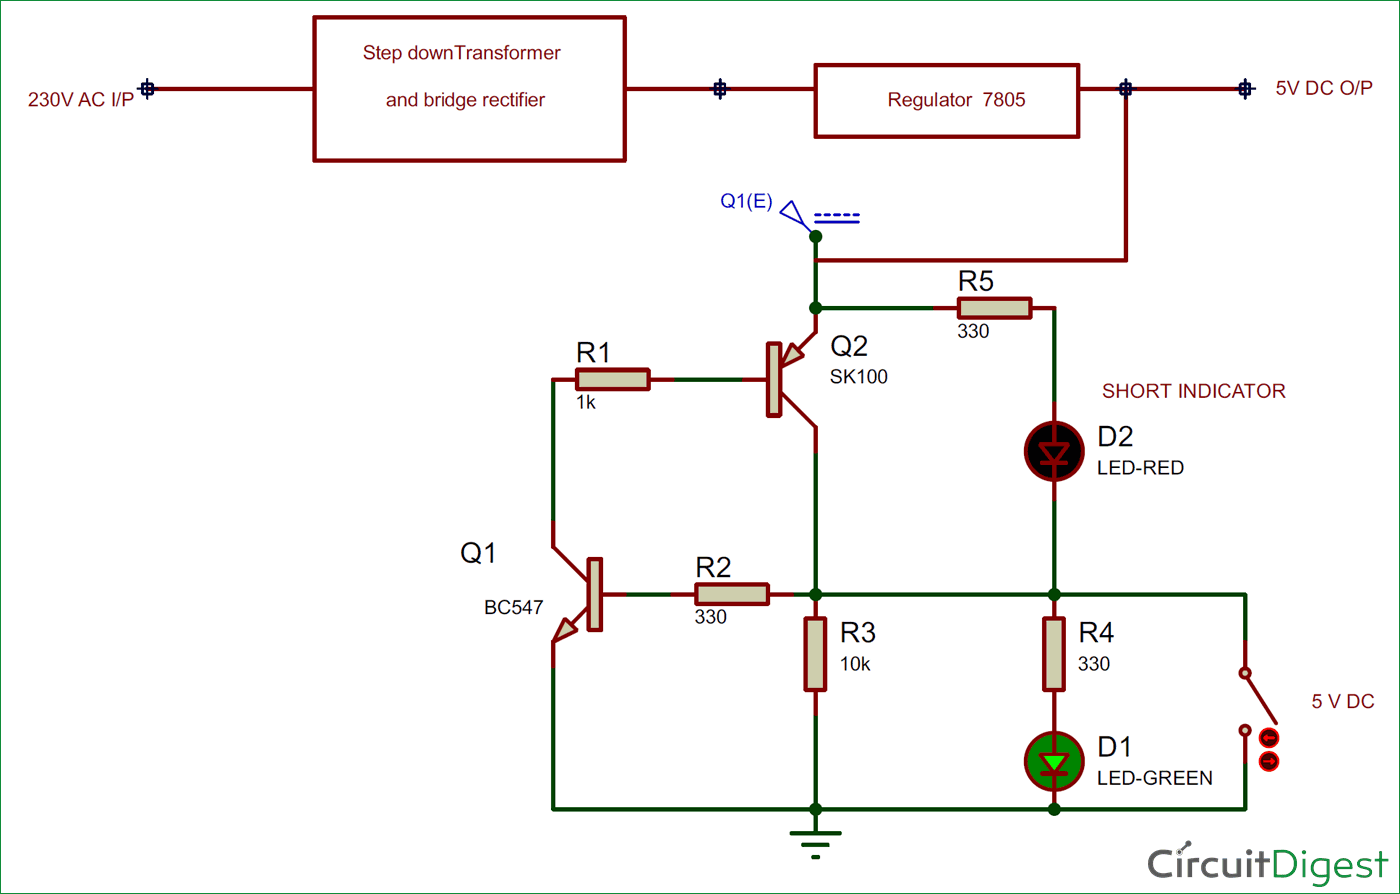 short circuit protection circuit diagram rh circuitdigest com short circuit diagram simple short circuit test diagram